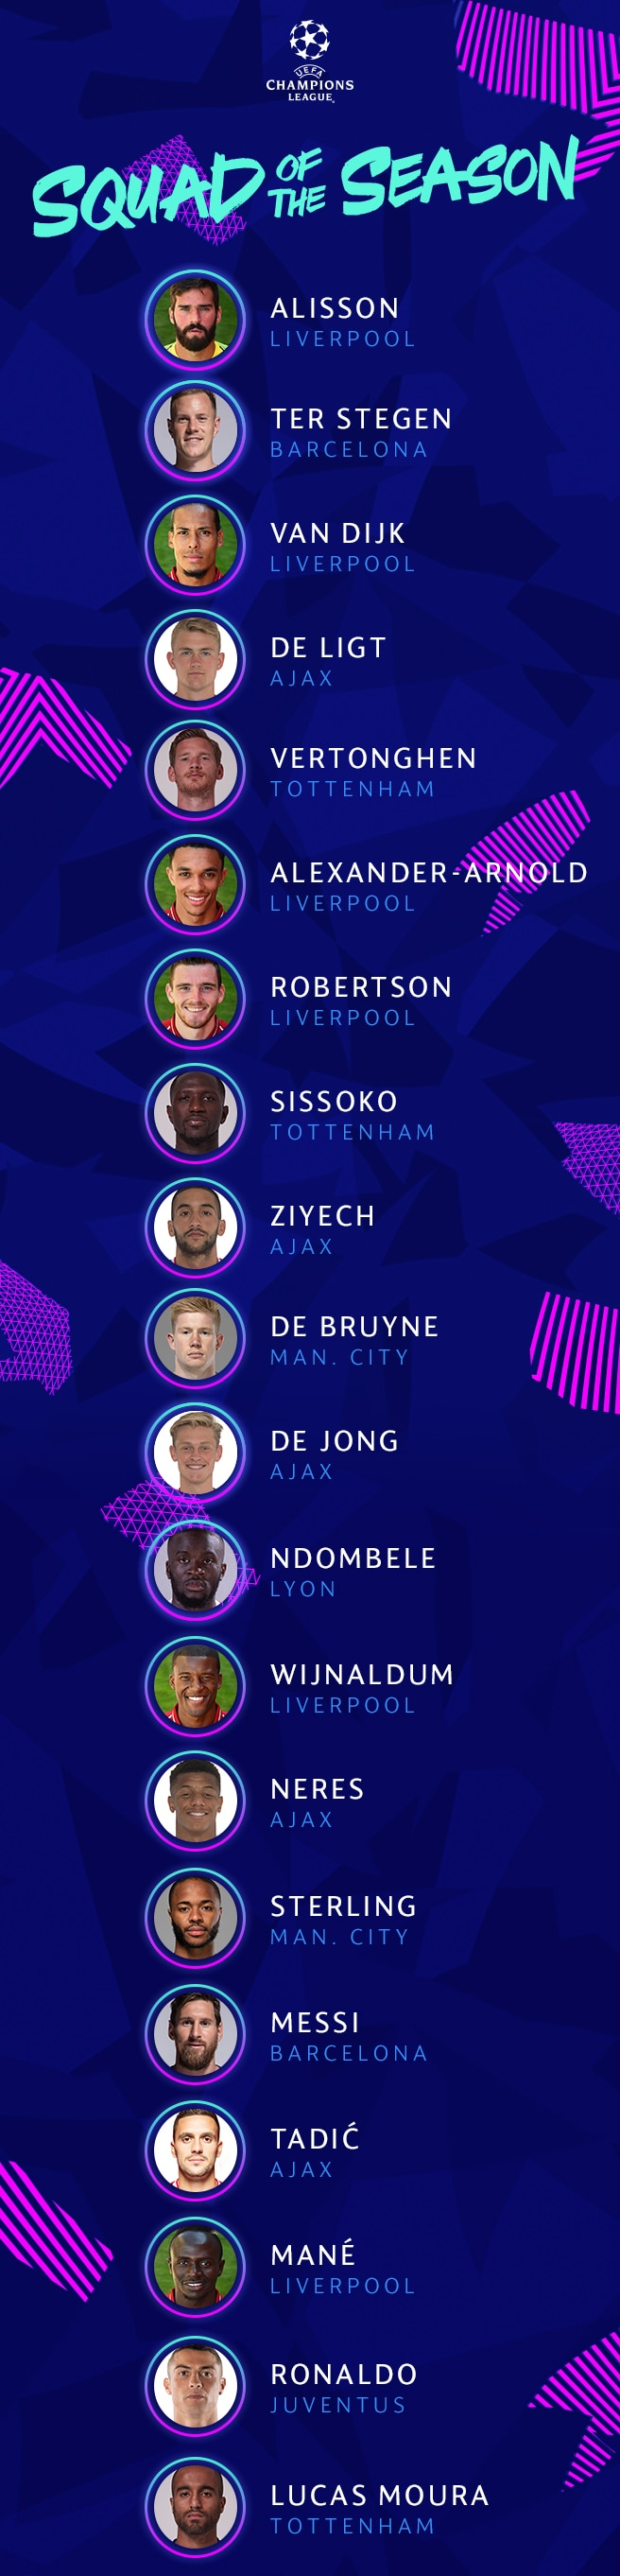 UEFA Champions League Squad of the Season 2018/19